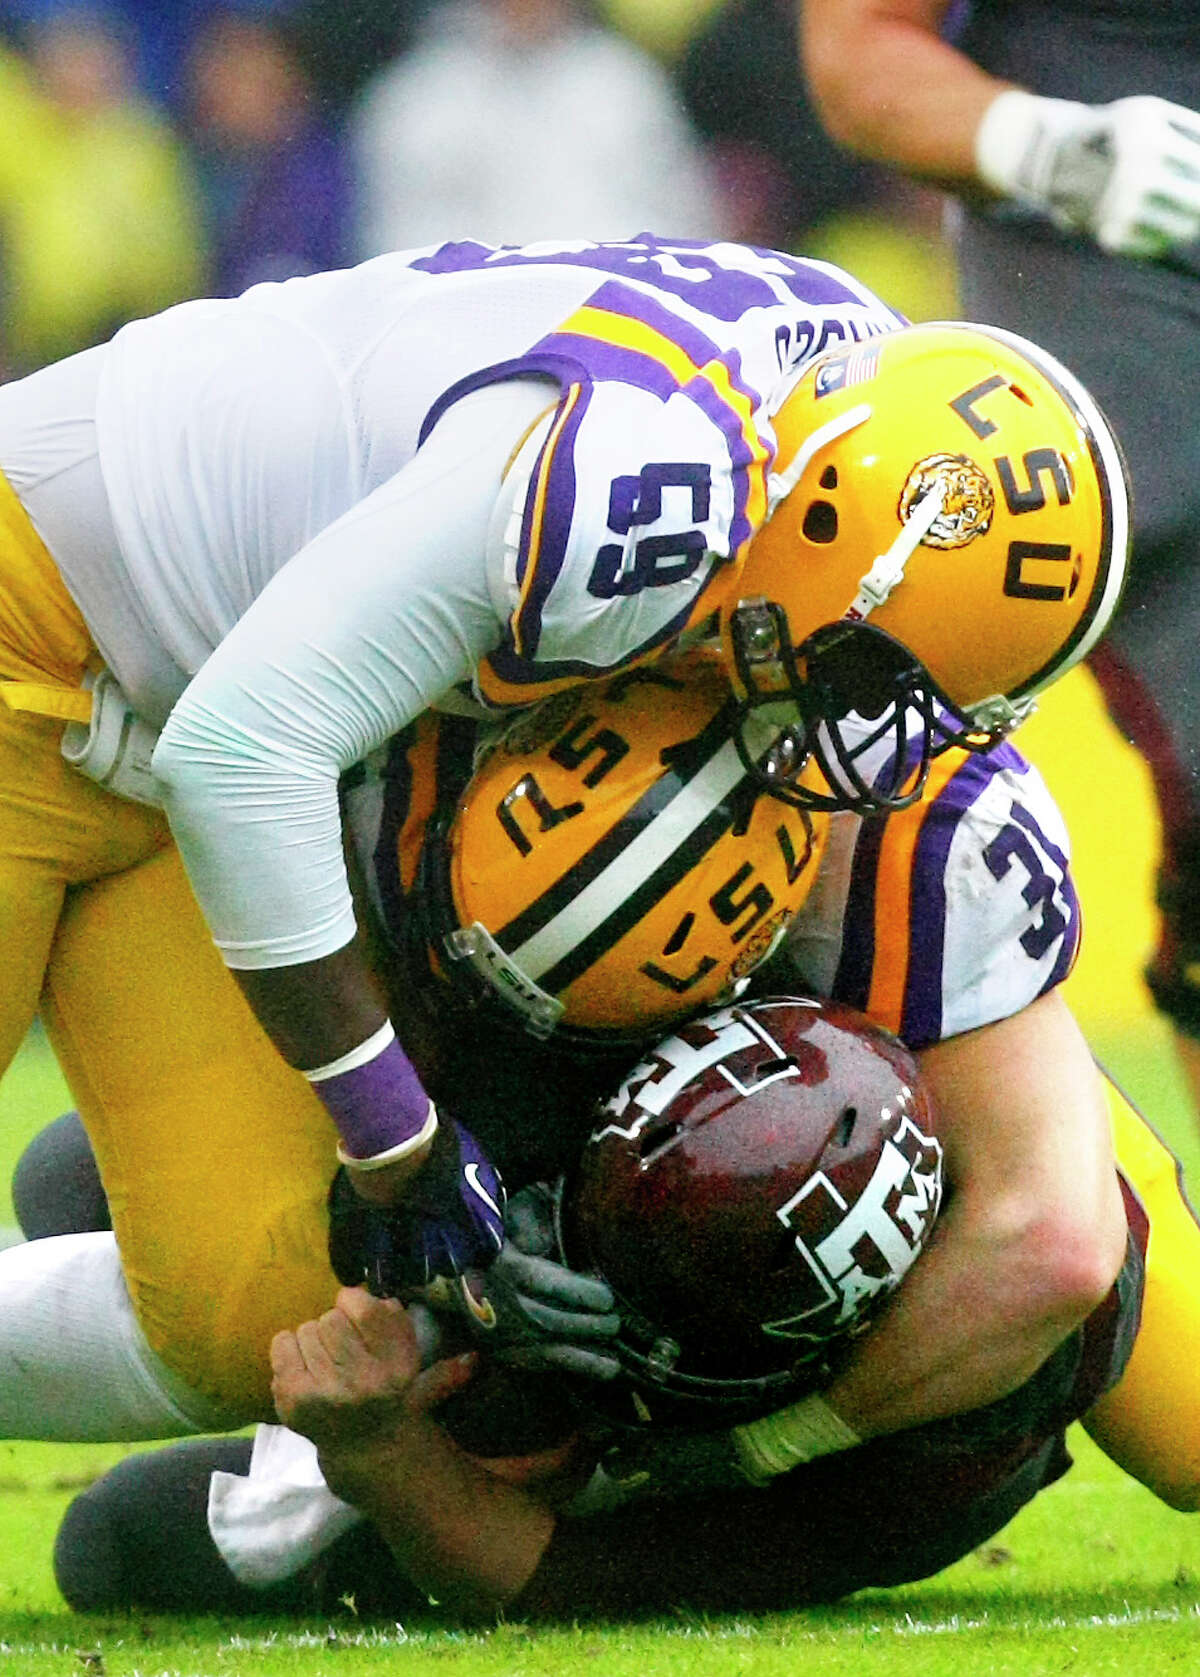 LSU defensive end Jermauria Rasco, top, and linebacker D.J. Welter wrap up Texas A&M quarterback Johnny Manziel during the second quarter of an NCAA College football game at Tiger Stadium Saturday, Nov. 23, 2013, in Baton Rouge. LSU won 34-10.